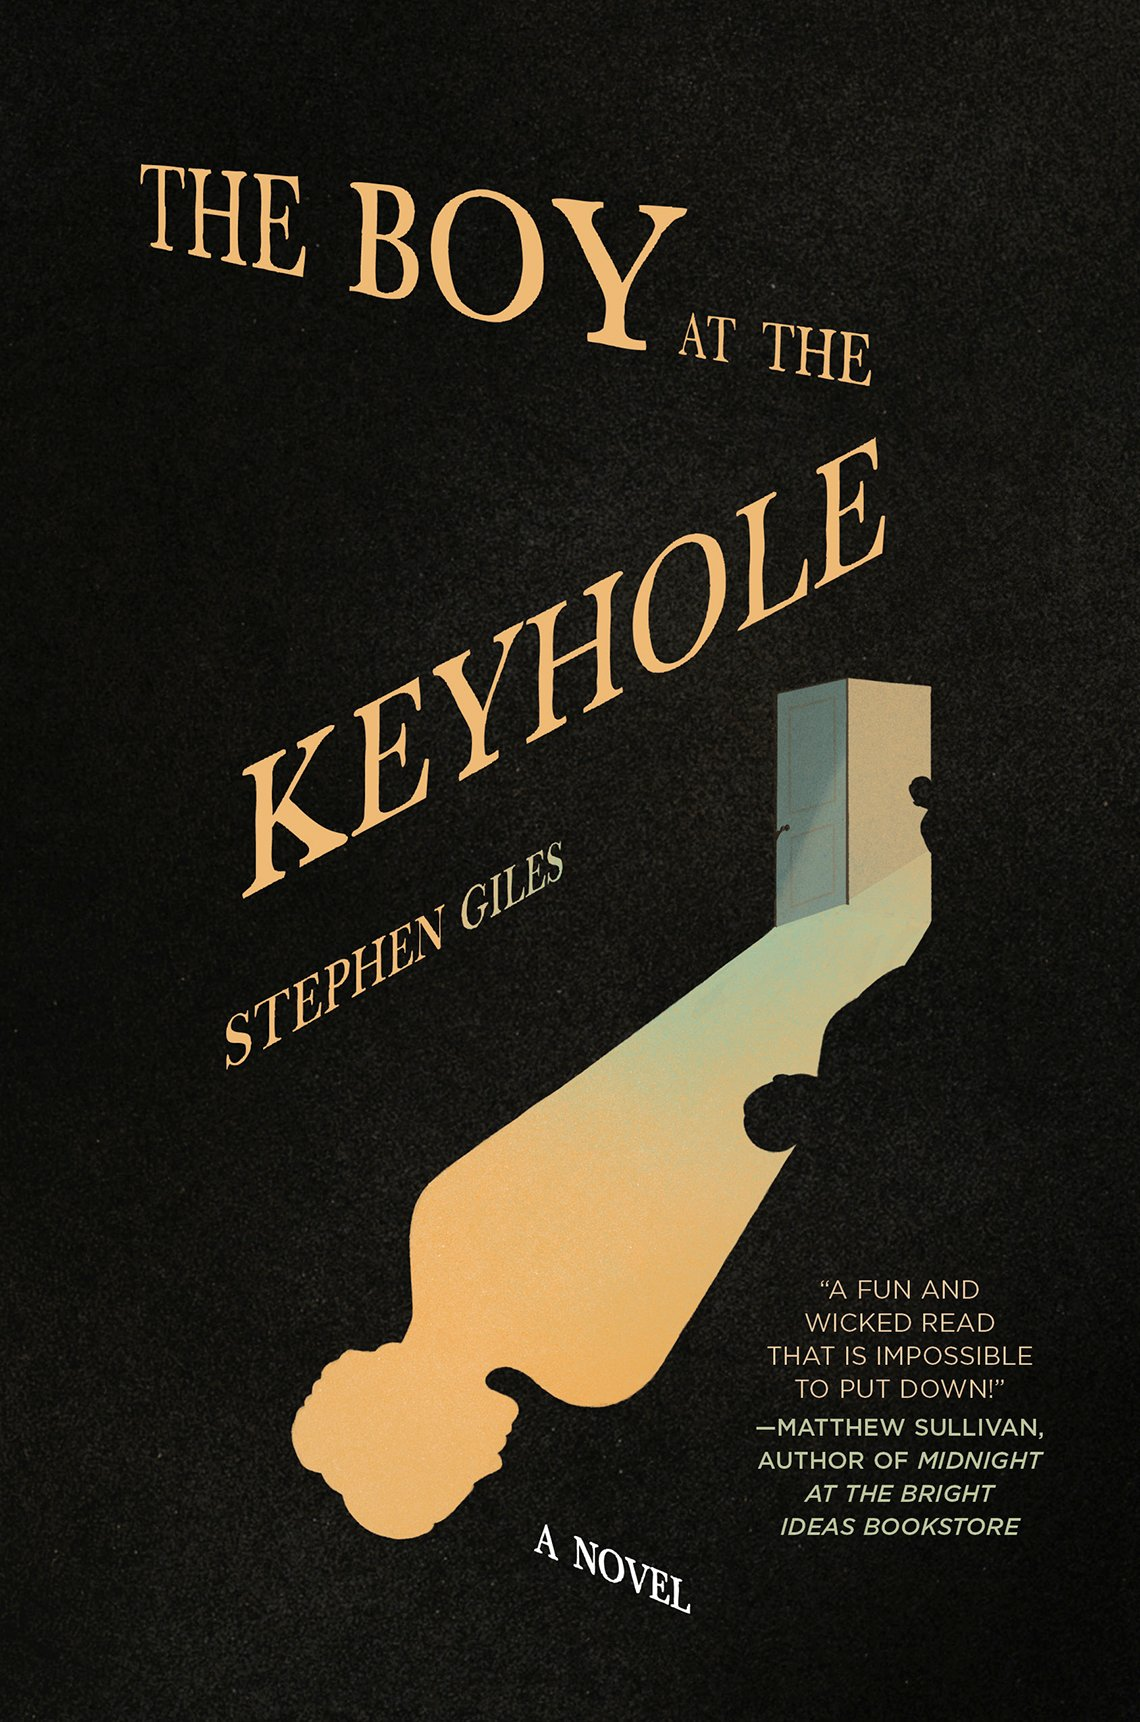 Book cover reads The Boy at the Keyhole, Stephen Giles Novel.